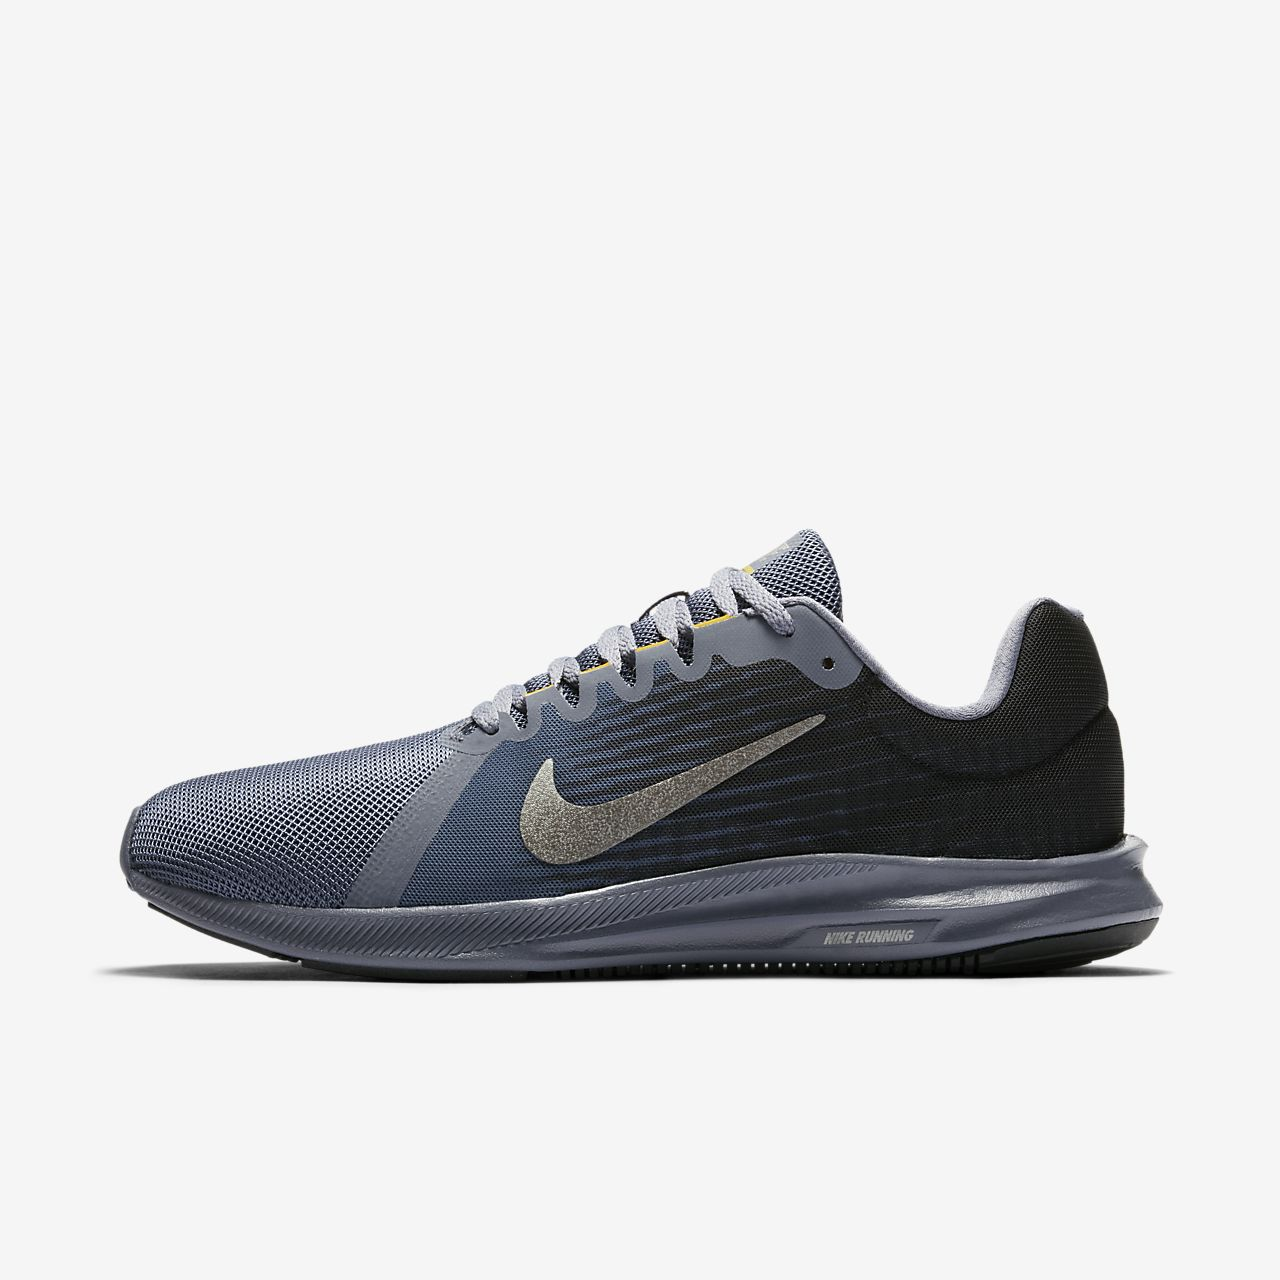 25b4d21f159 Nike Downshifter 8 Men s Running Shoe. Nike.com GB